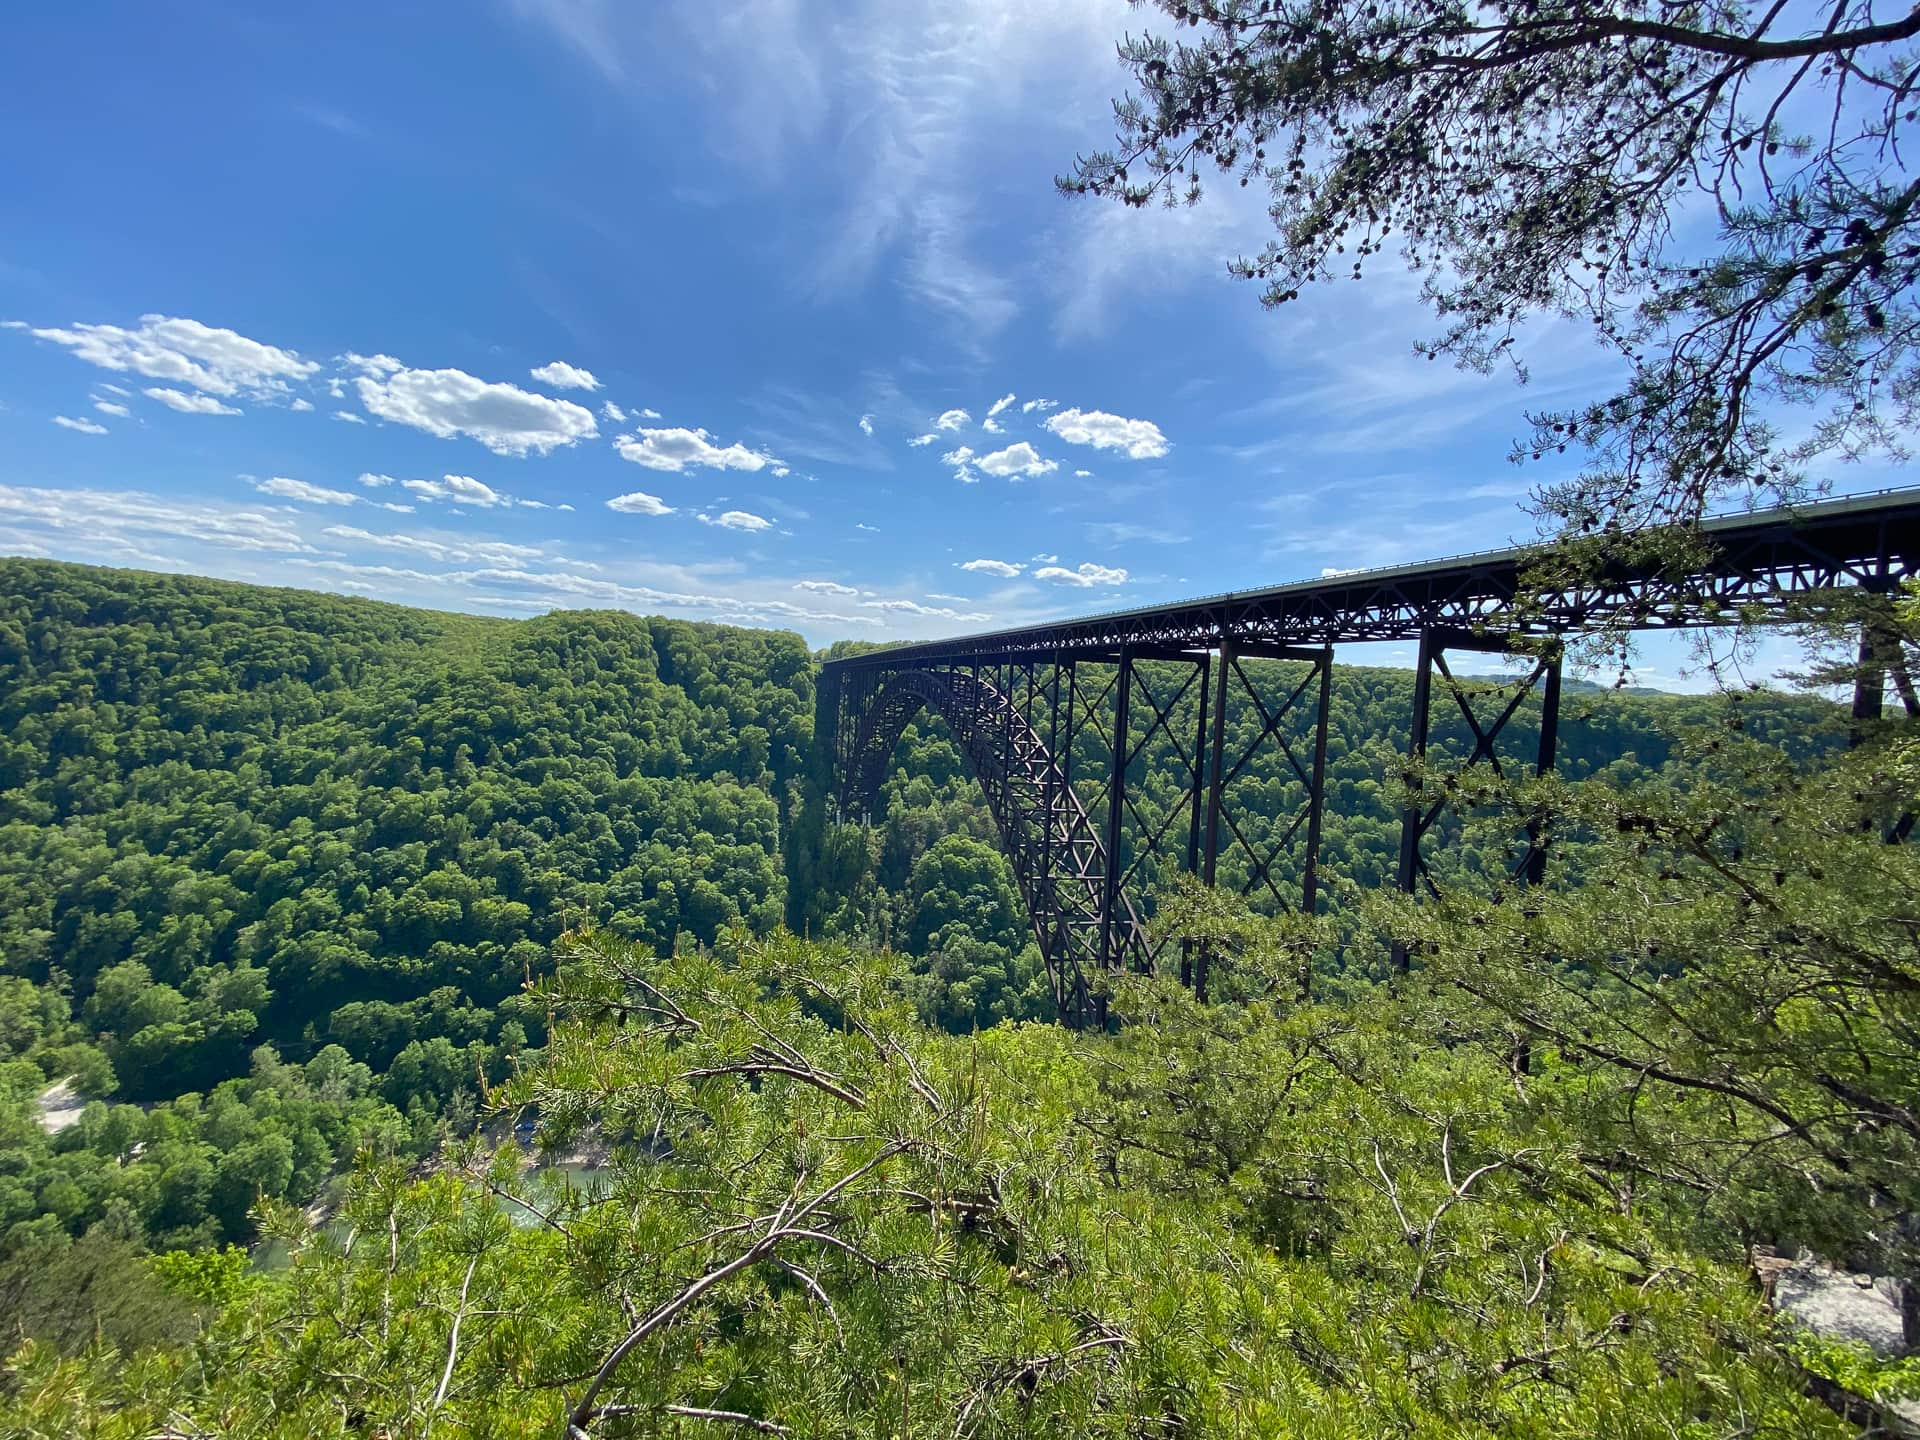 4 National Parks in the Southeast Worth Visiting by RV